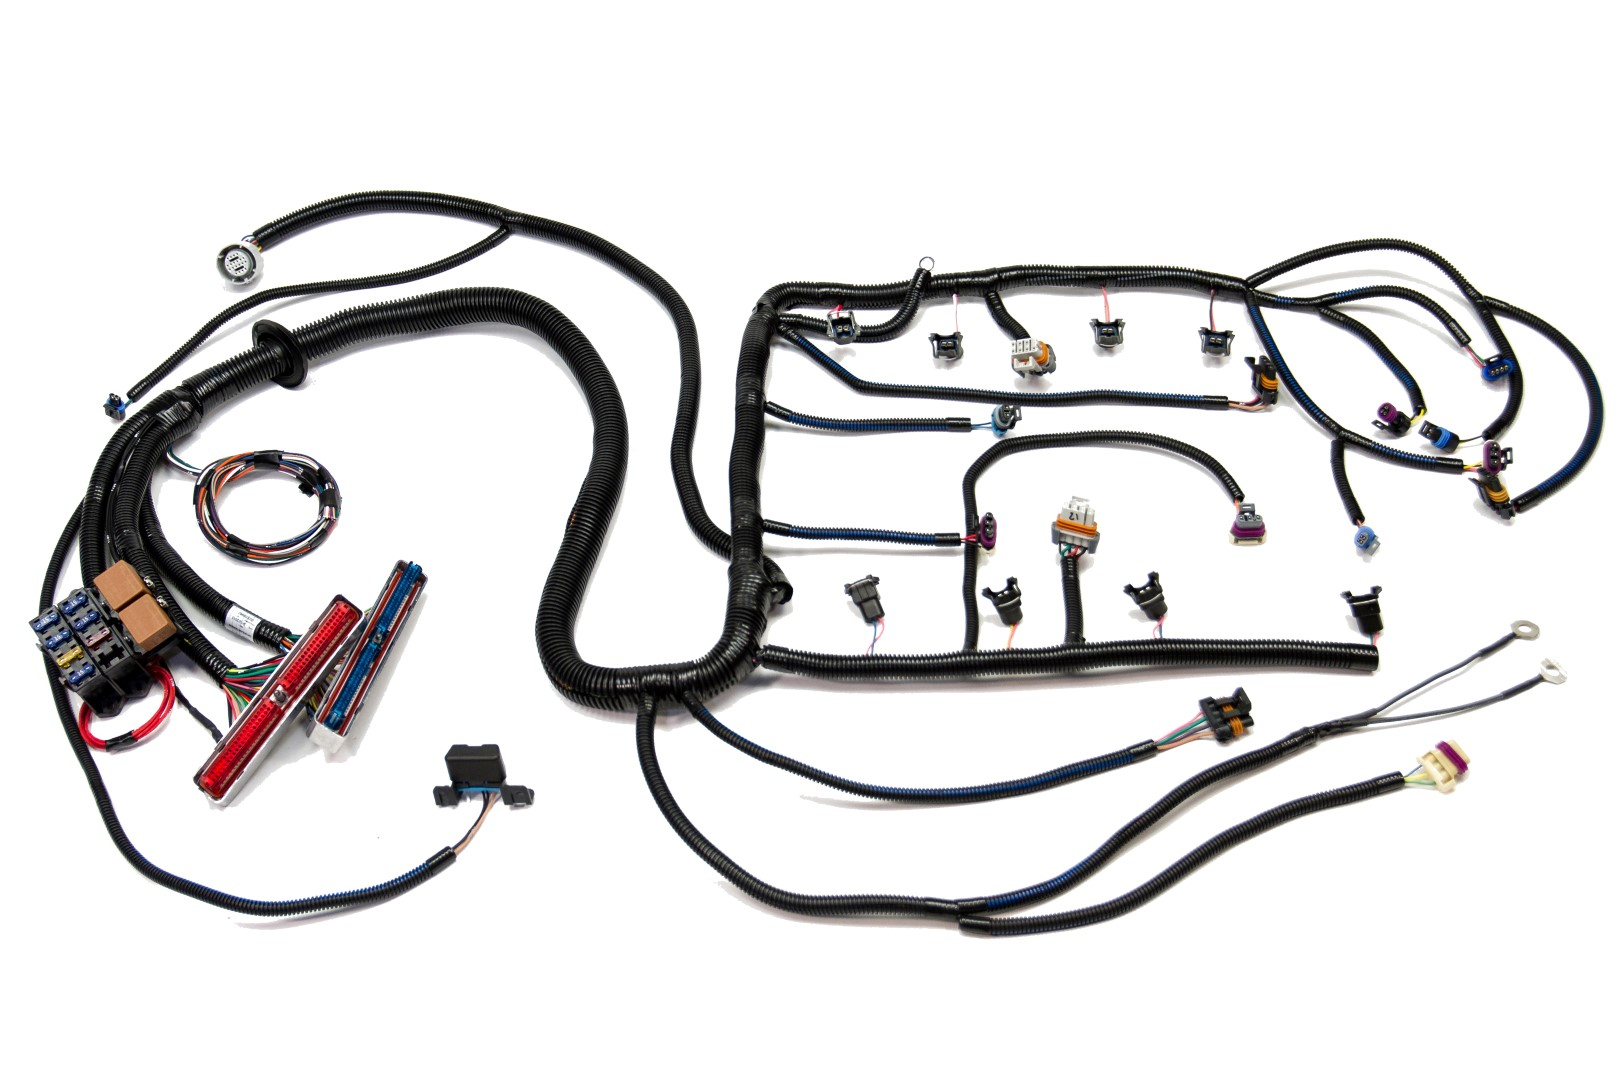 HAR 1012 psi standalone wiring harness ls wiring ls wiring harness TH400 Wiring Harness Diagram at panicattacktreatment.co